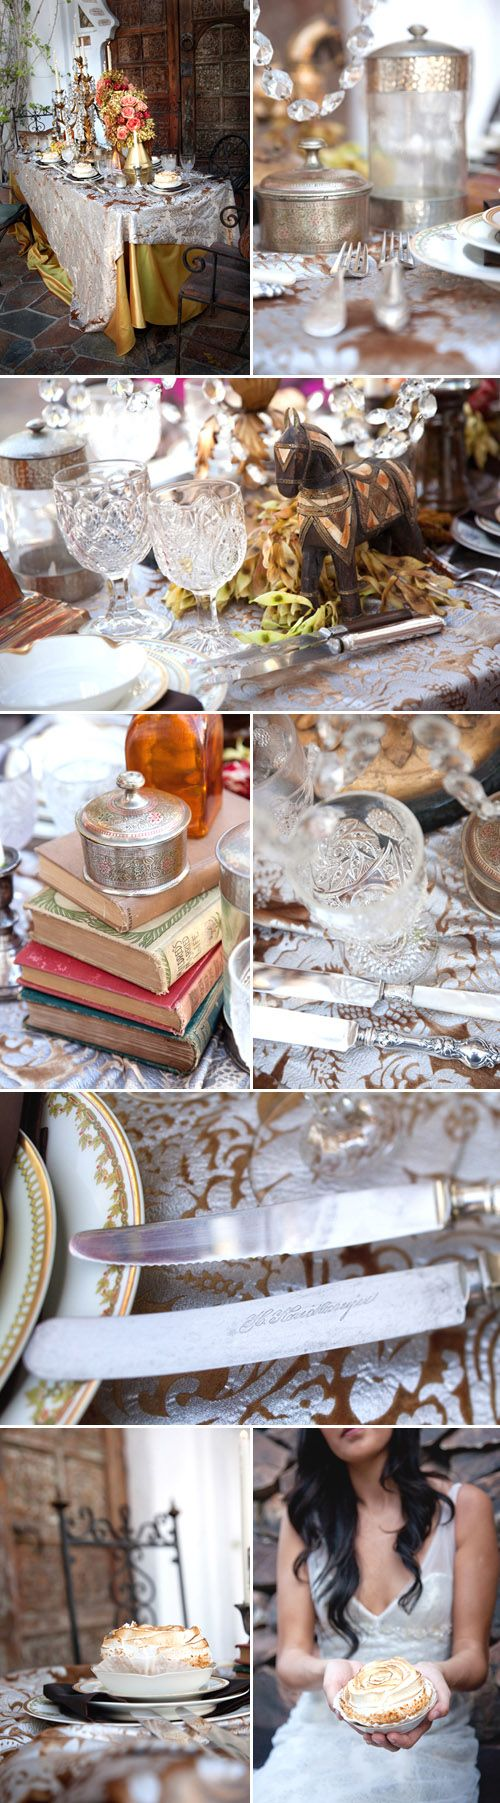 Old World European Elegant Wedding Decor Ideas